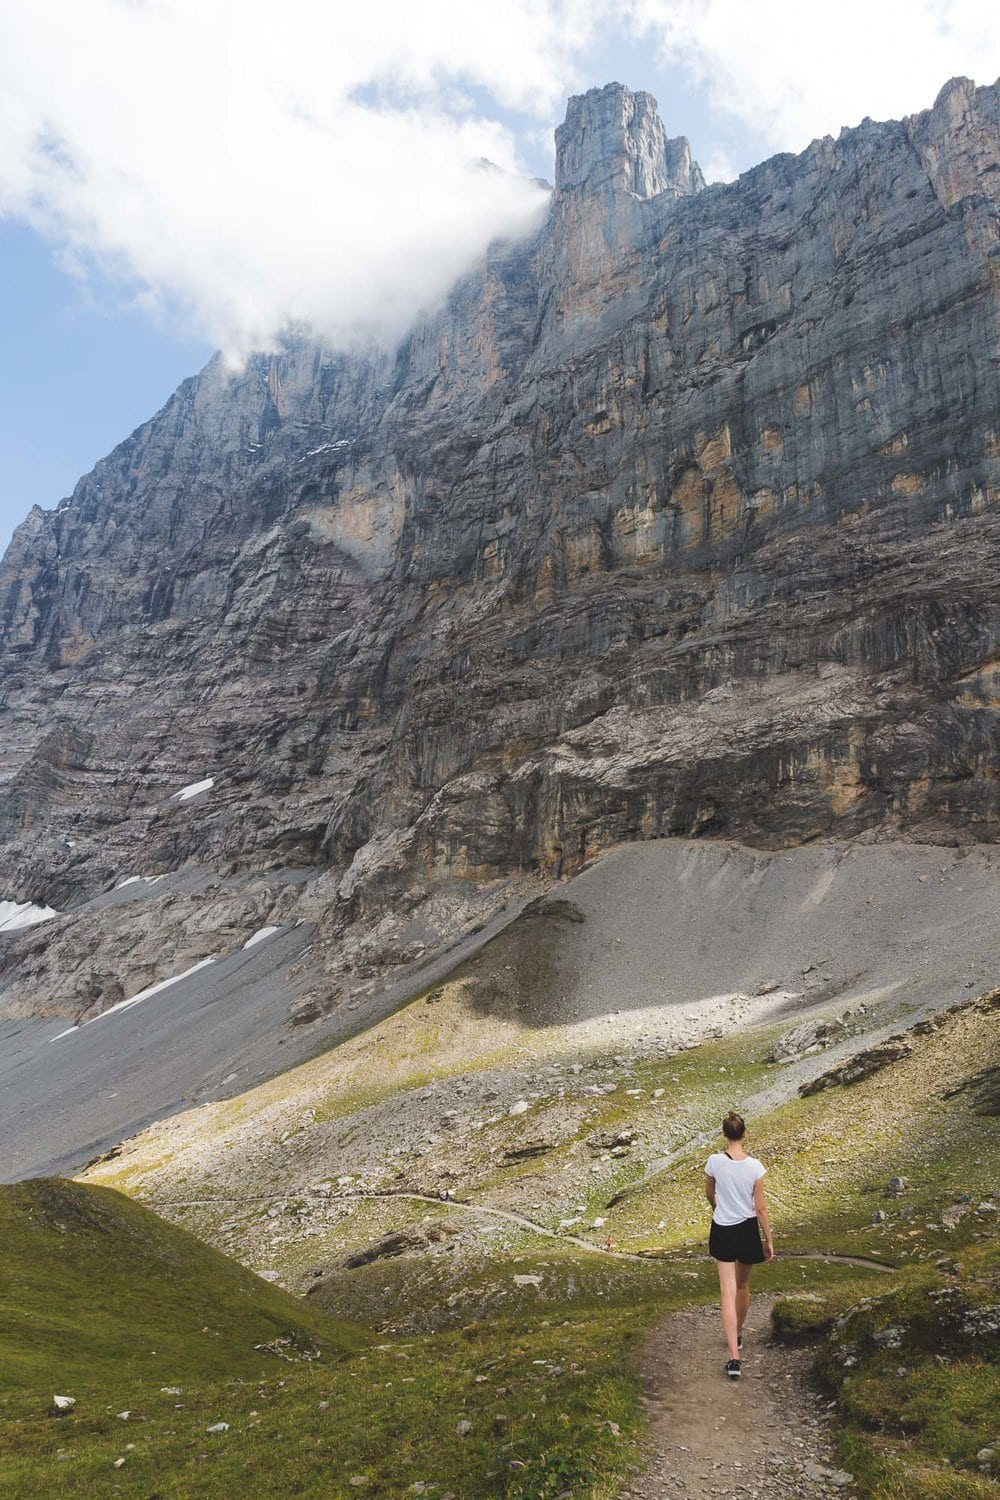 Eiger Trail walking below the North Face